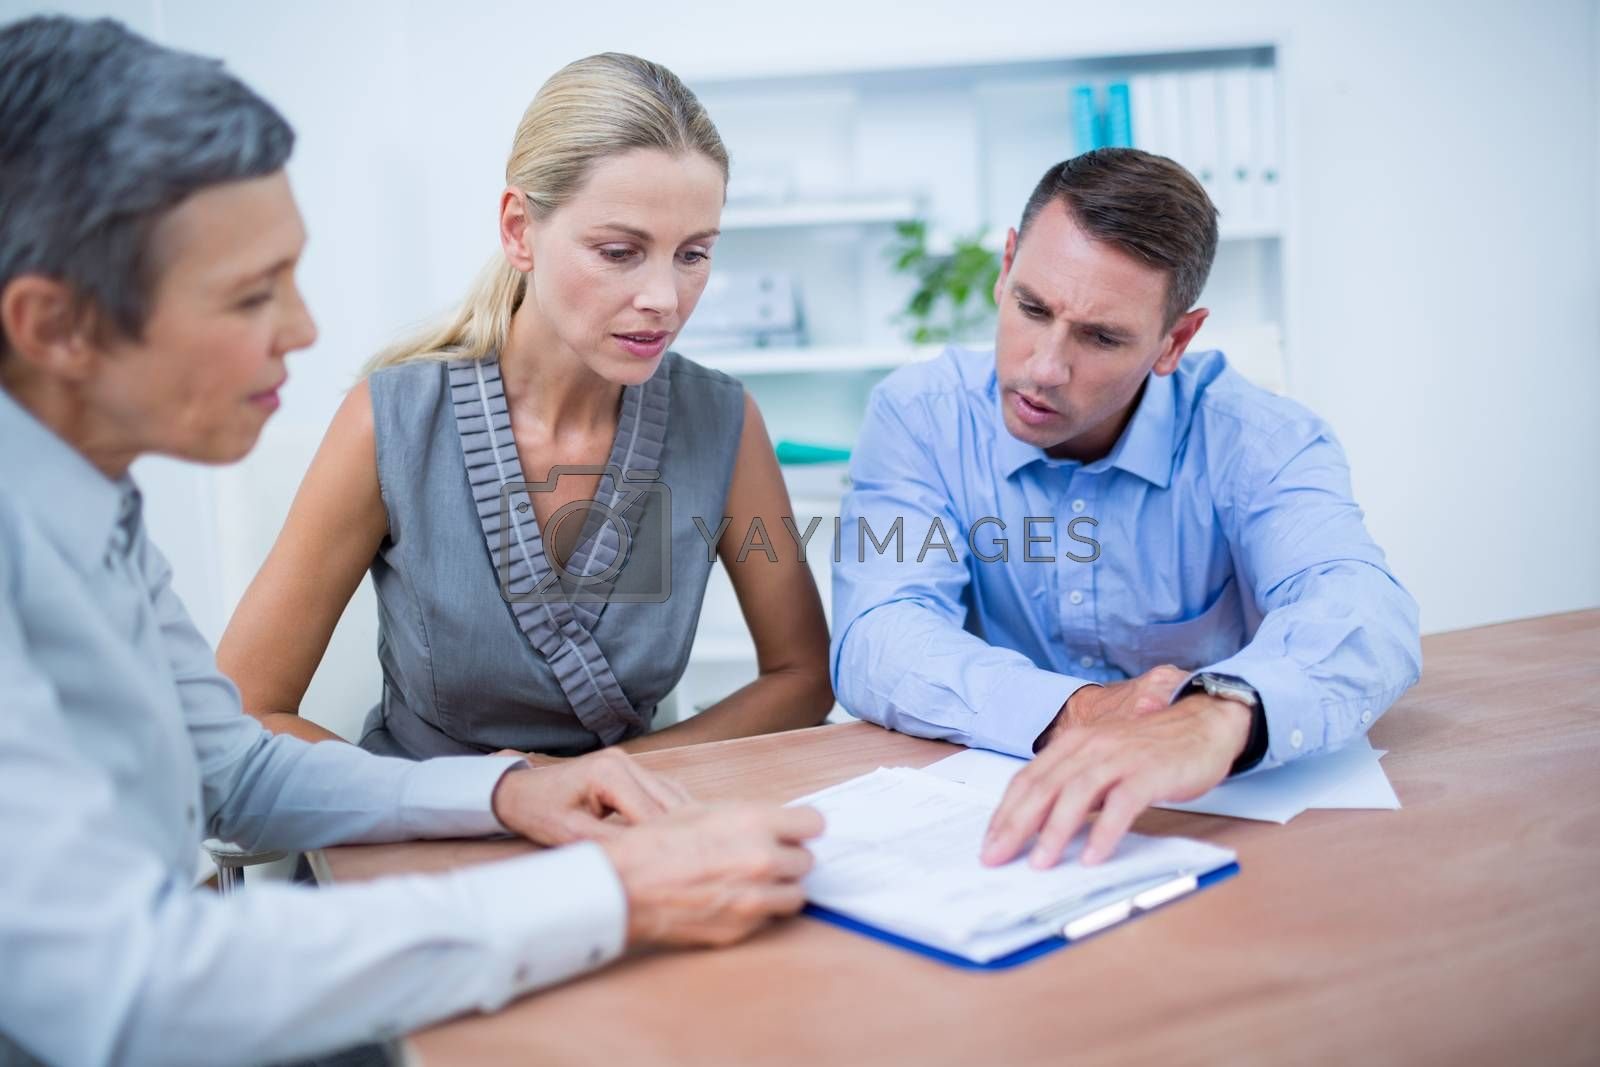 Royalty free image of A business team brainstorming together by Wavebreakmedia